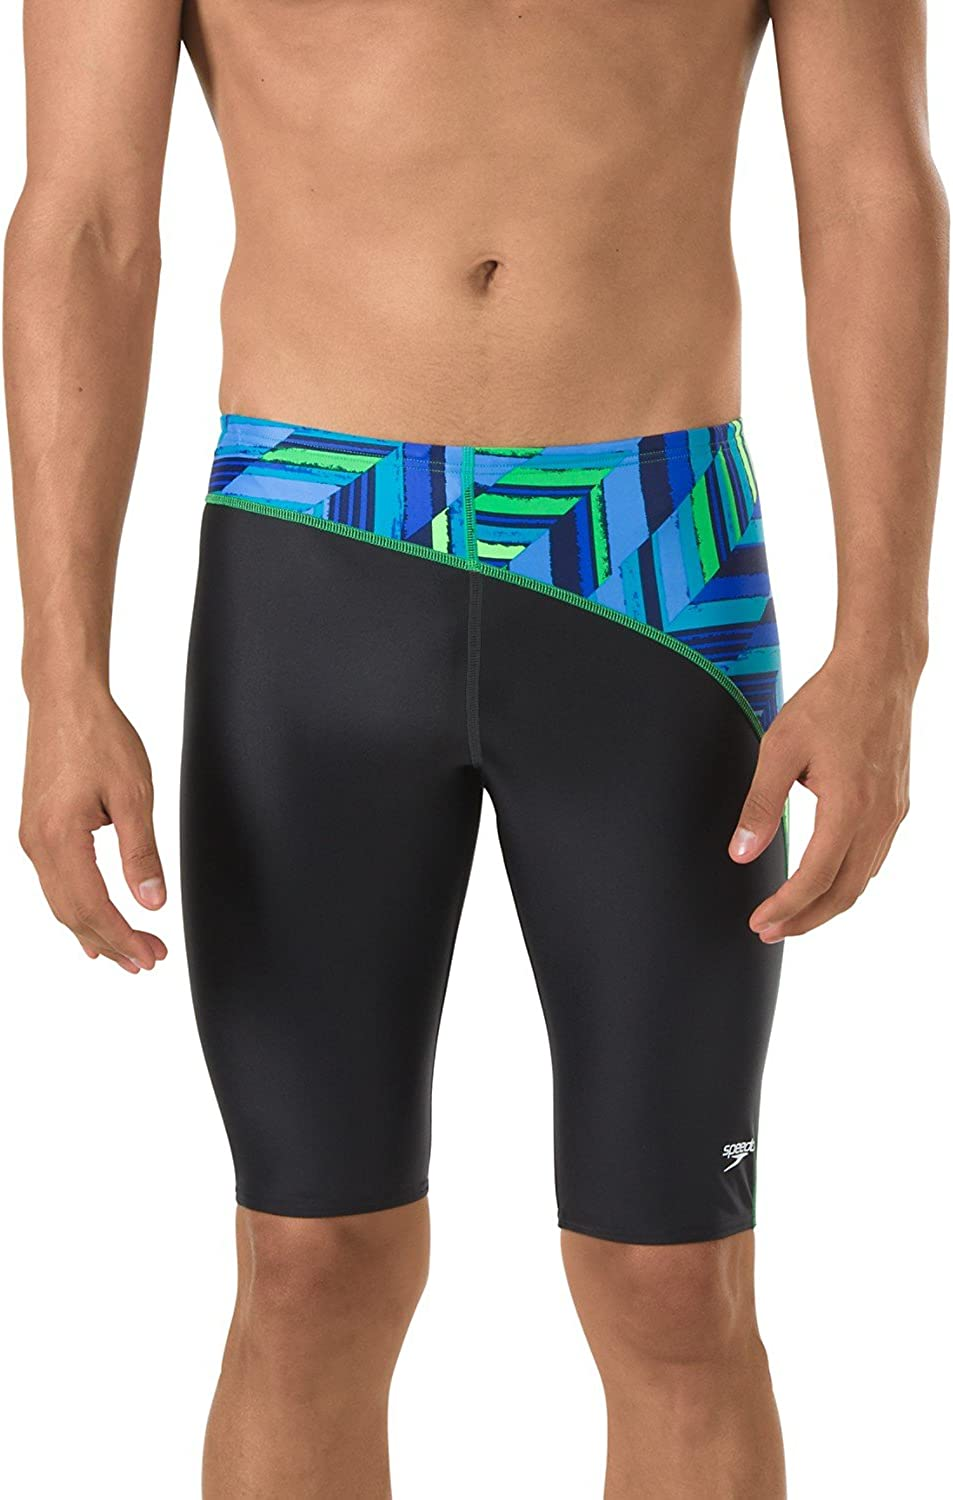 Speedo Men's Low In a popularity price Swimsuit Jammer Powerflex Angles-Discontinued Eco